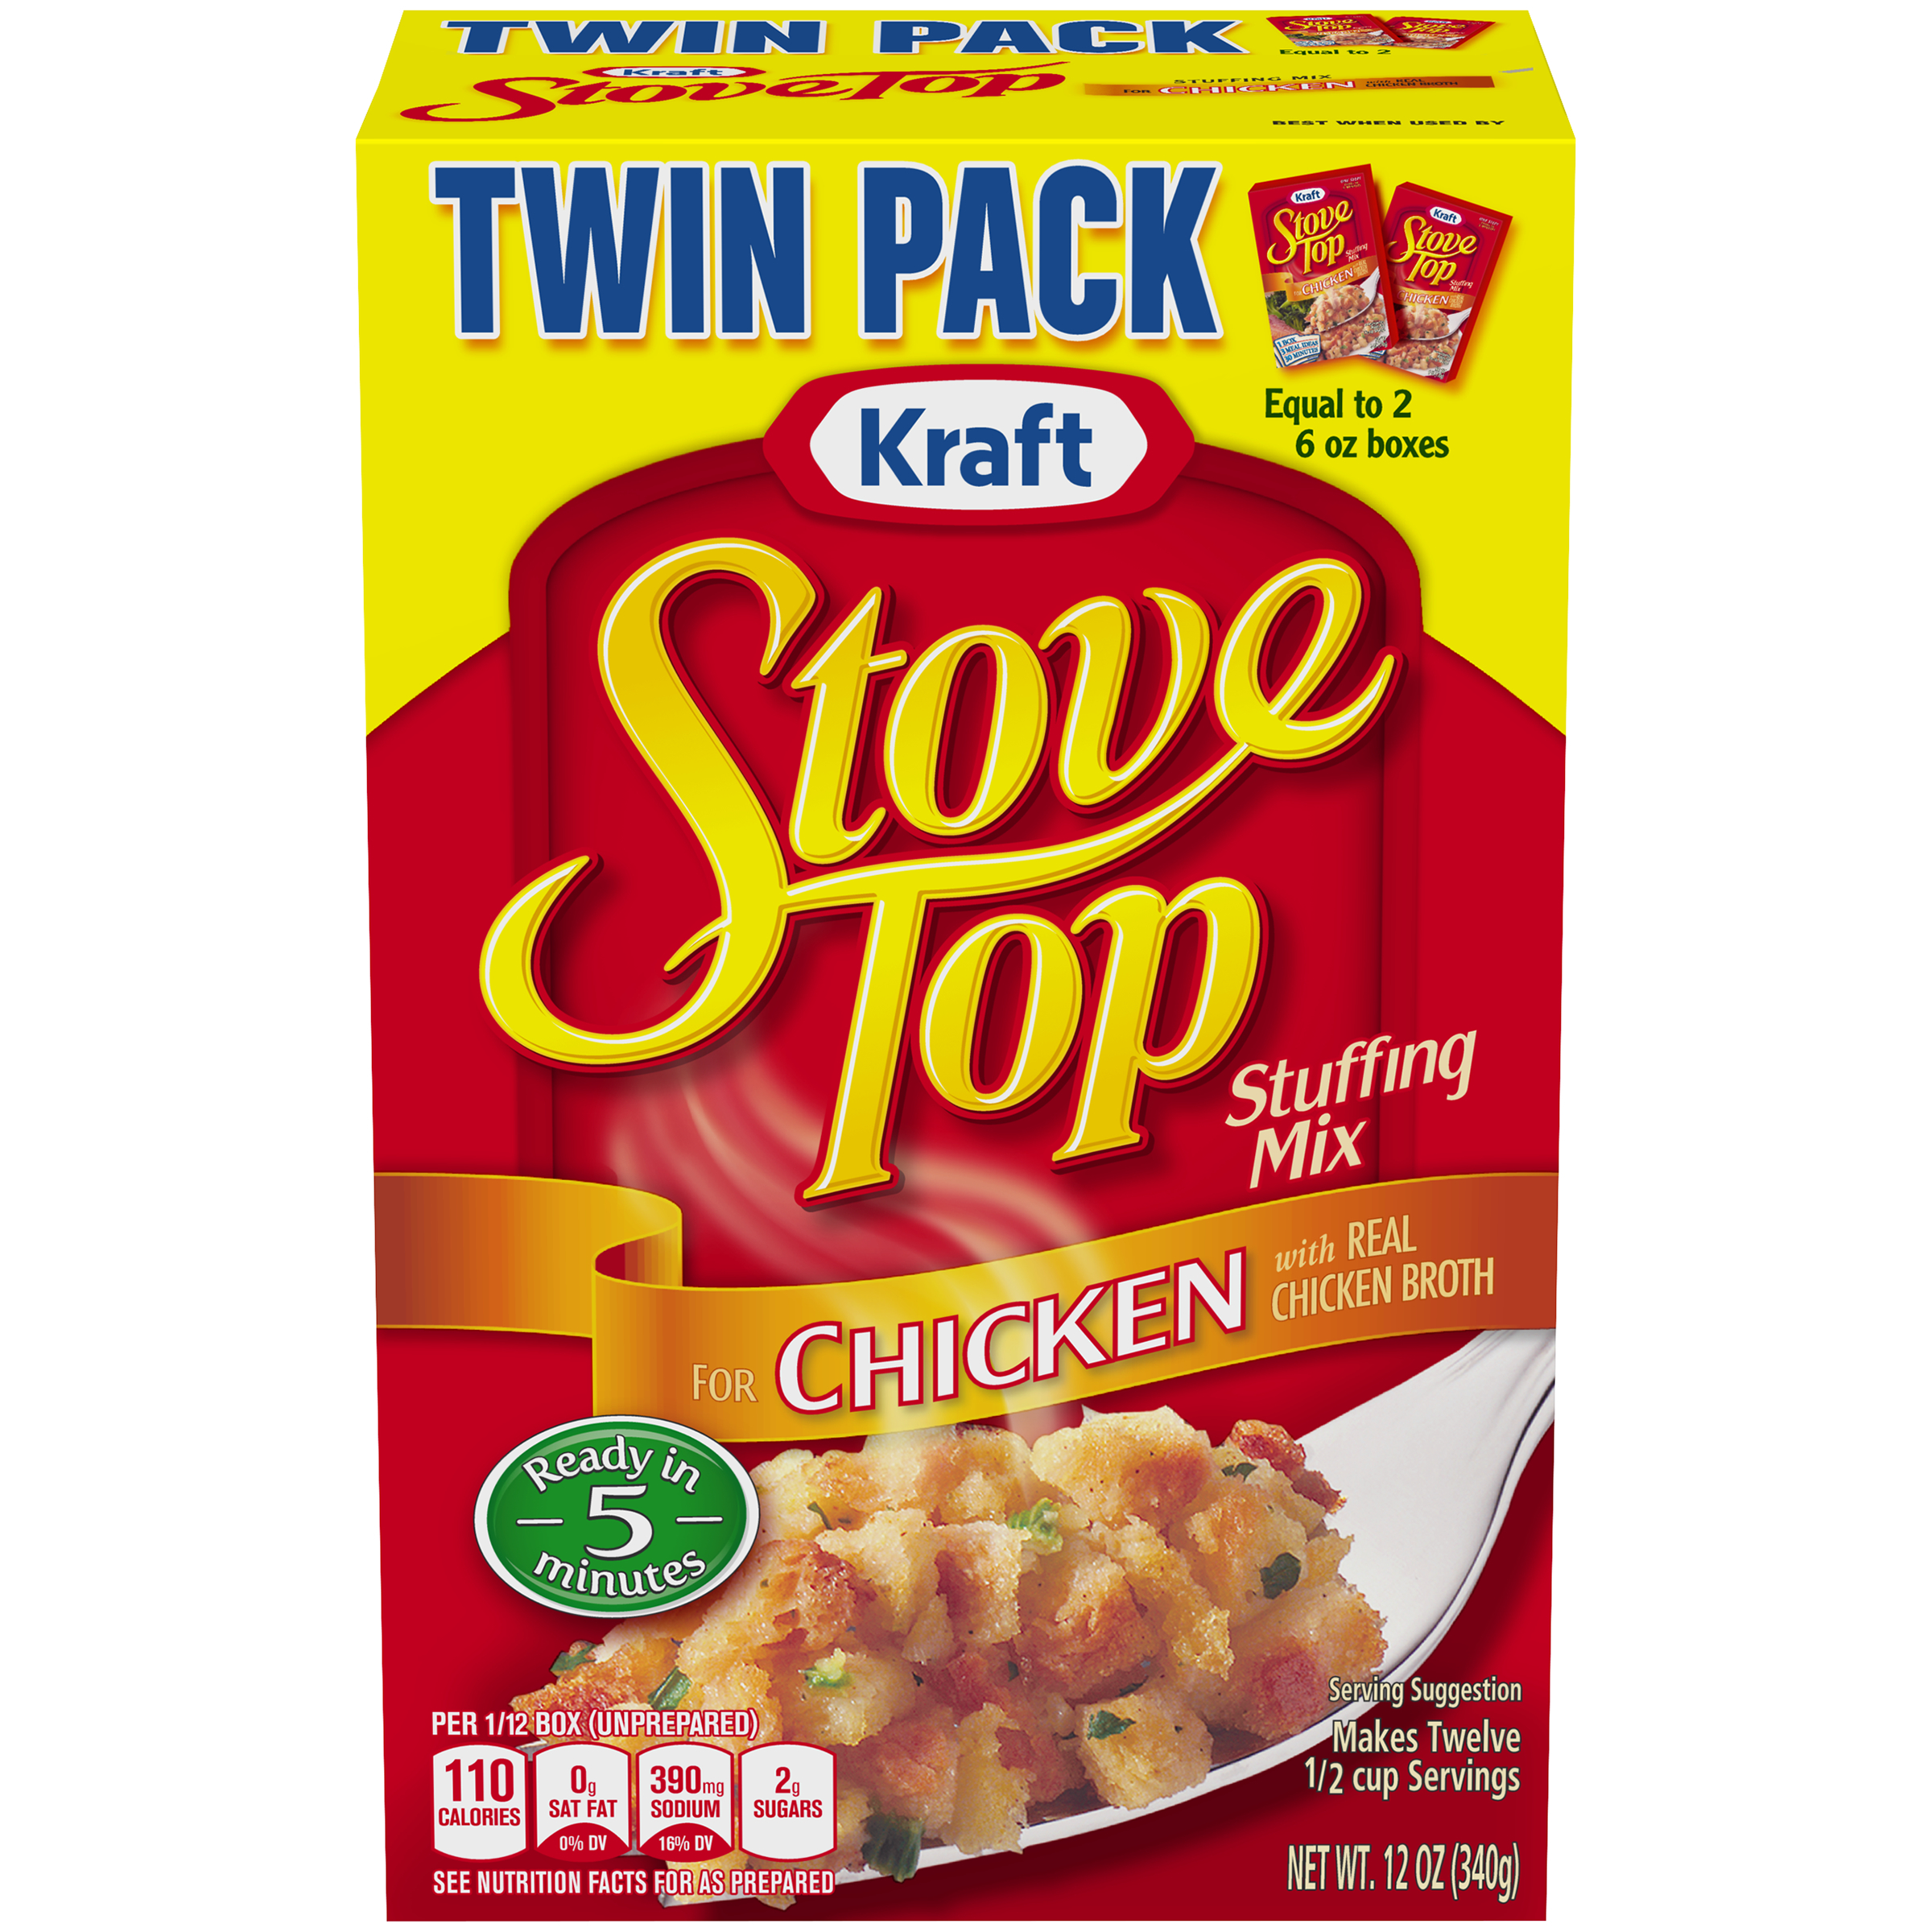 Stove Top Twin Pack Stuffing Mix For Chicken